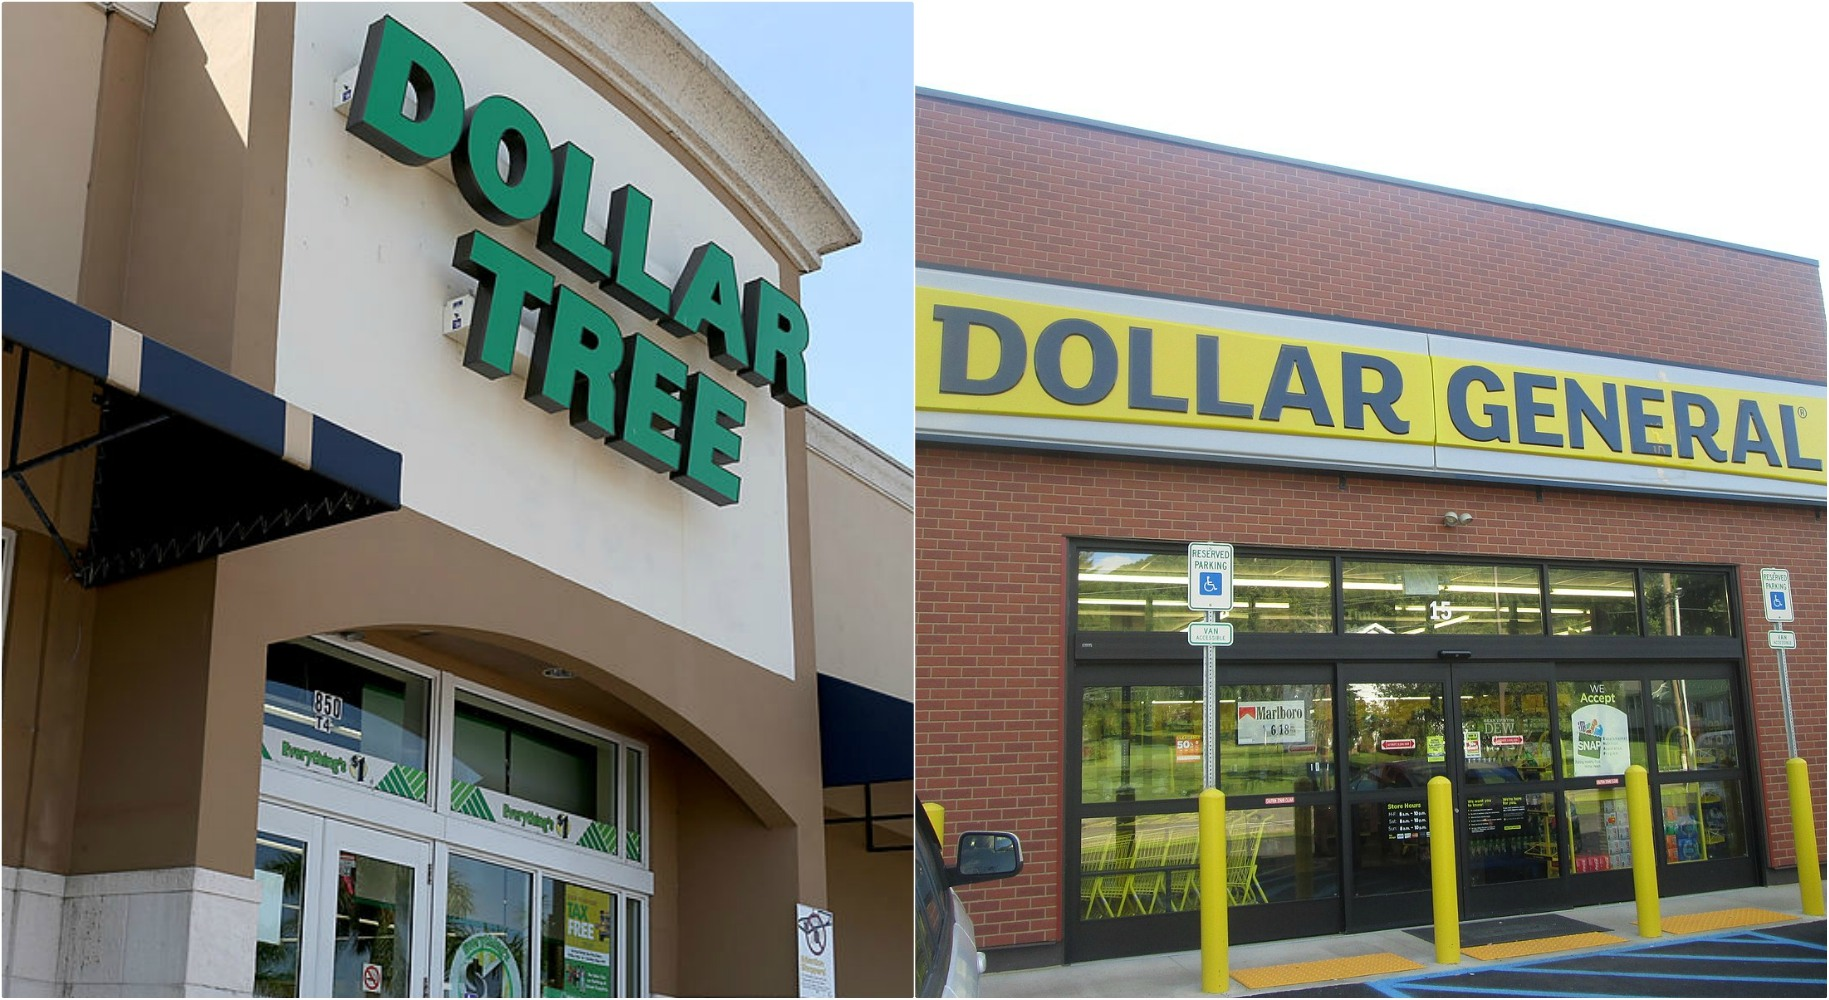 Dollar Tree vs  Dollar General: The Store With the Better